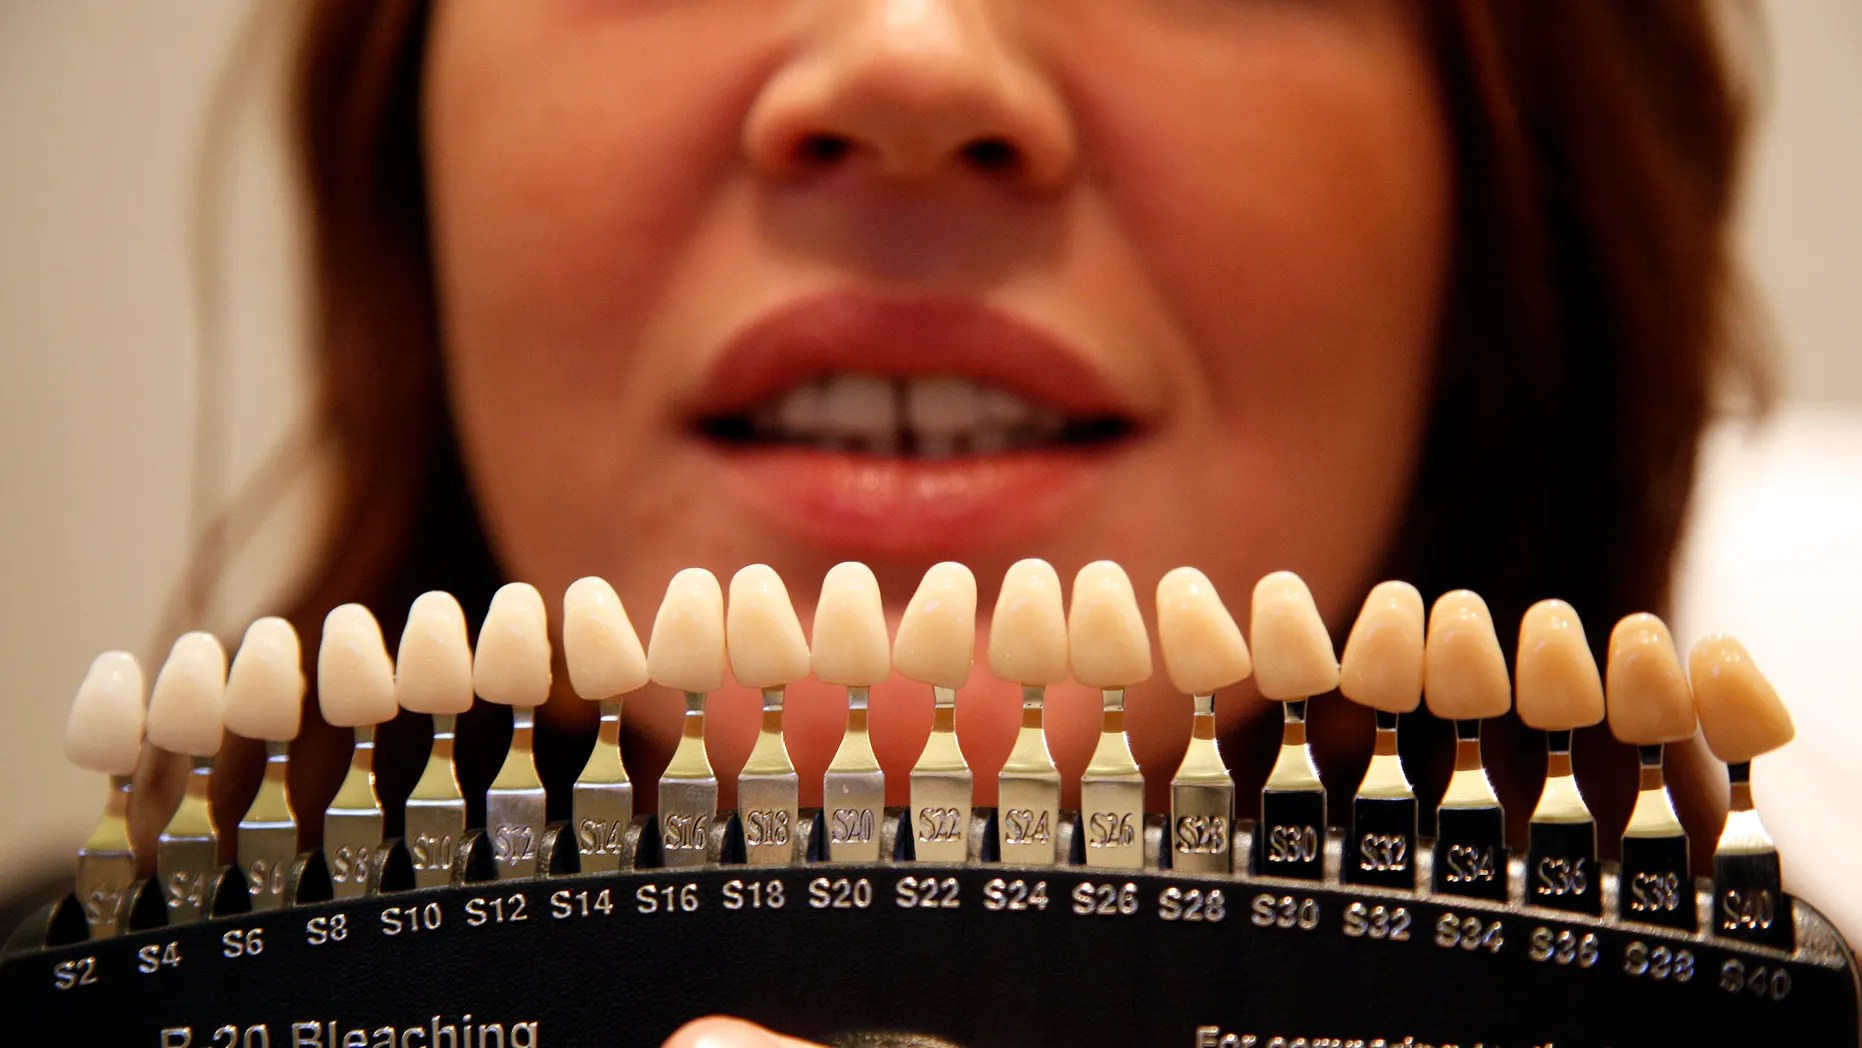 tooth colour chart is used to evaluate the current before customer undergoes also dental regulators work shut down teeth whitening businesses fox rh foxnews